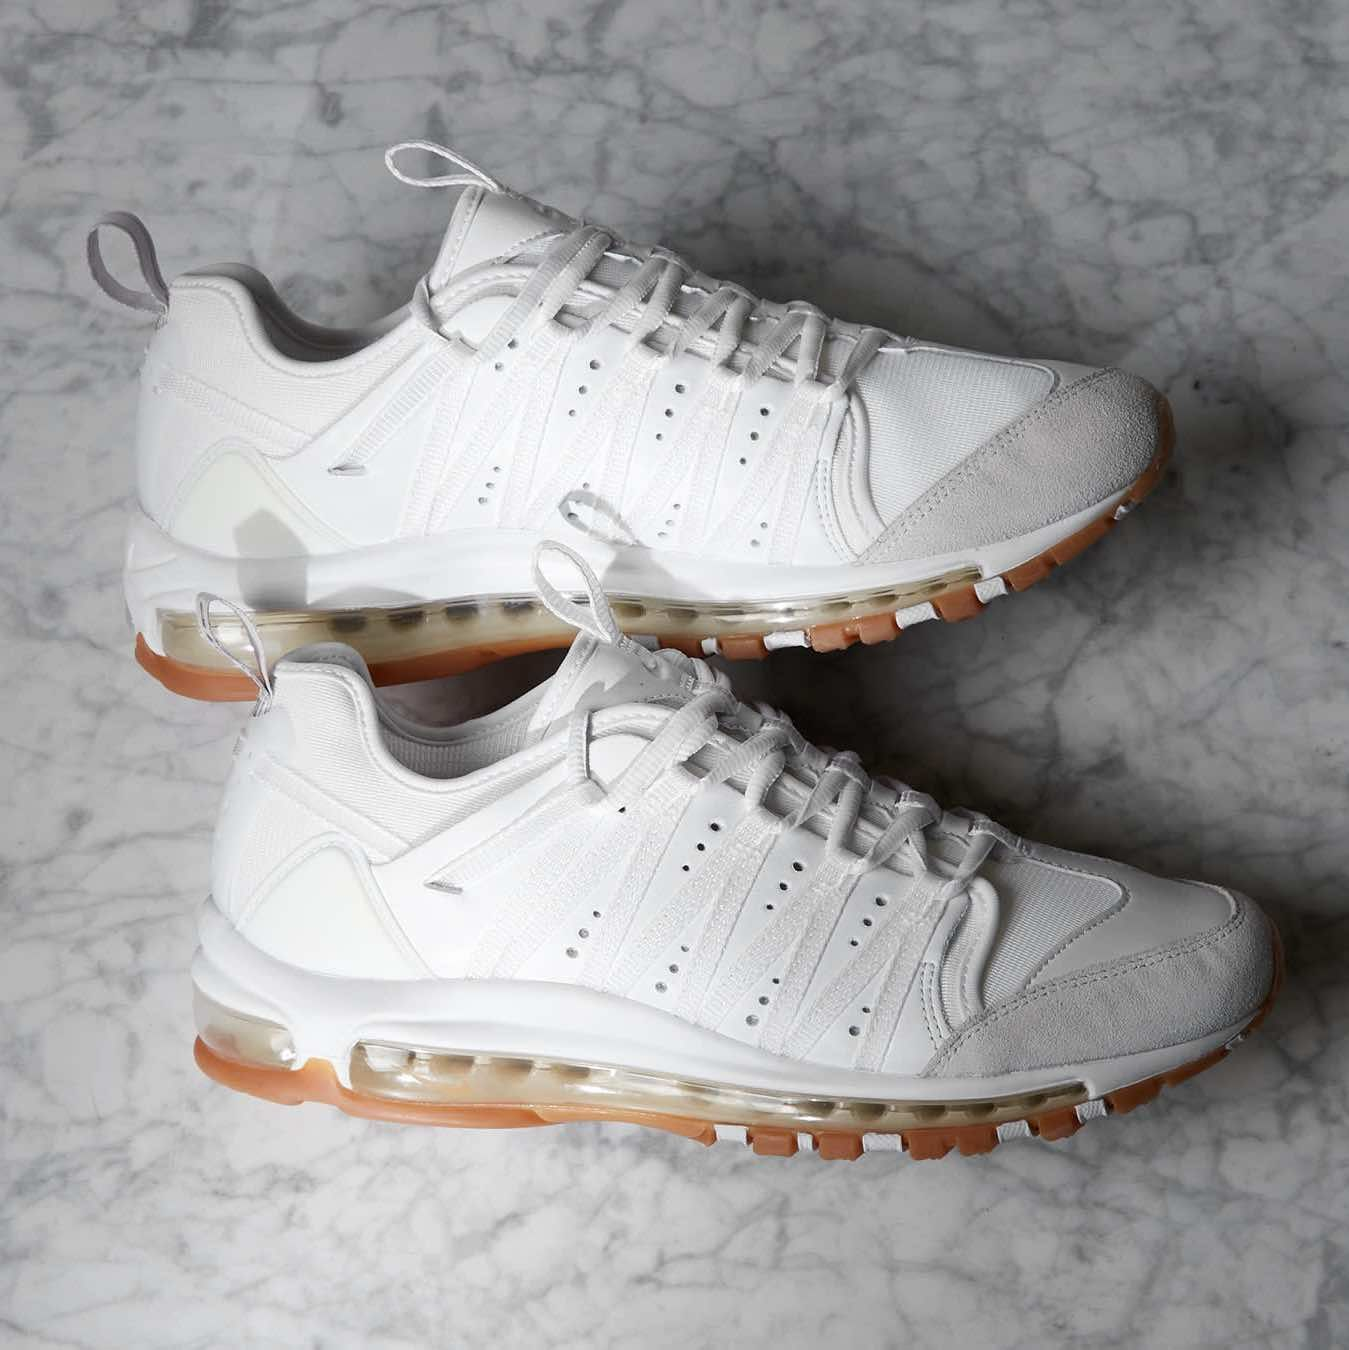 2019 CLOT x Nike Air Max 97Haven White AO2134 100 For Sale